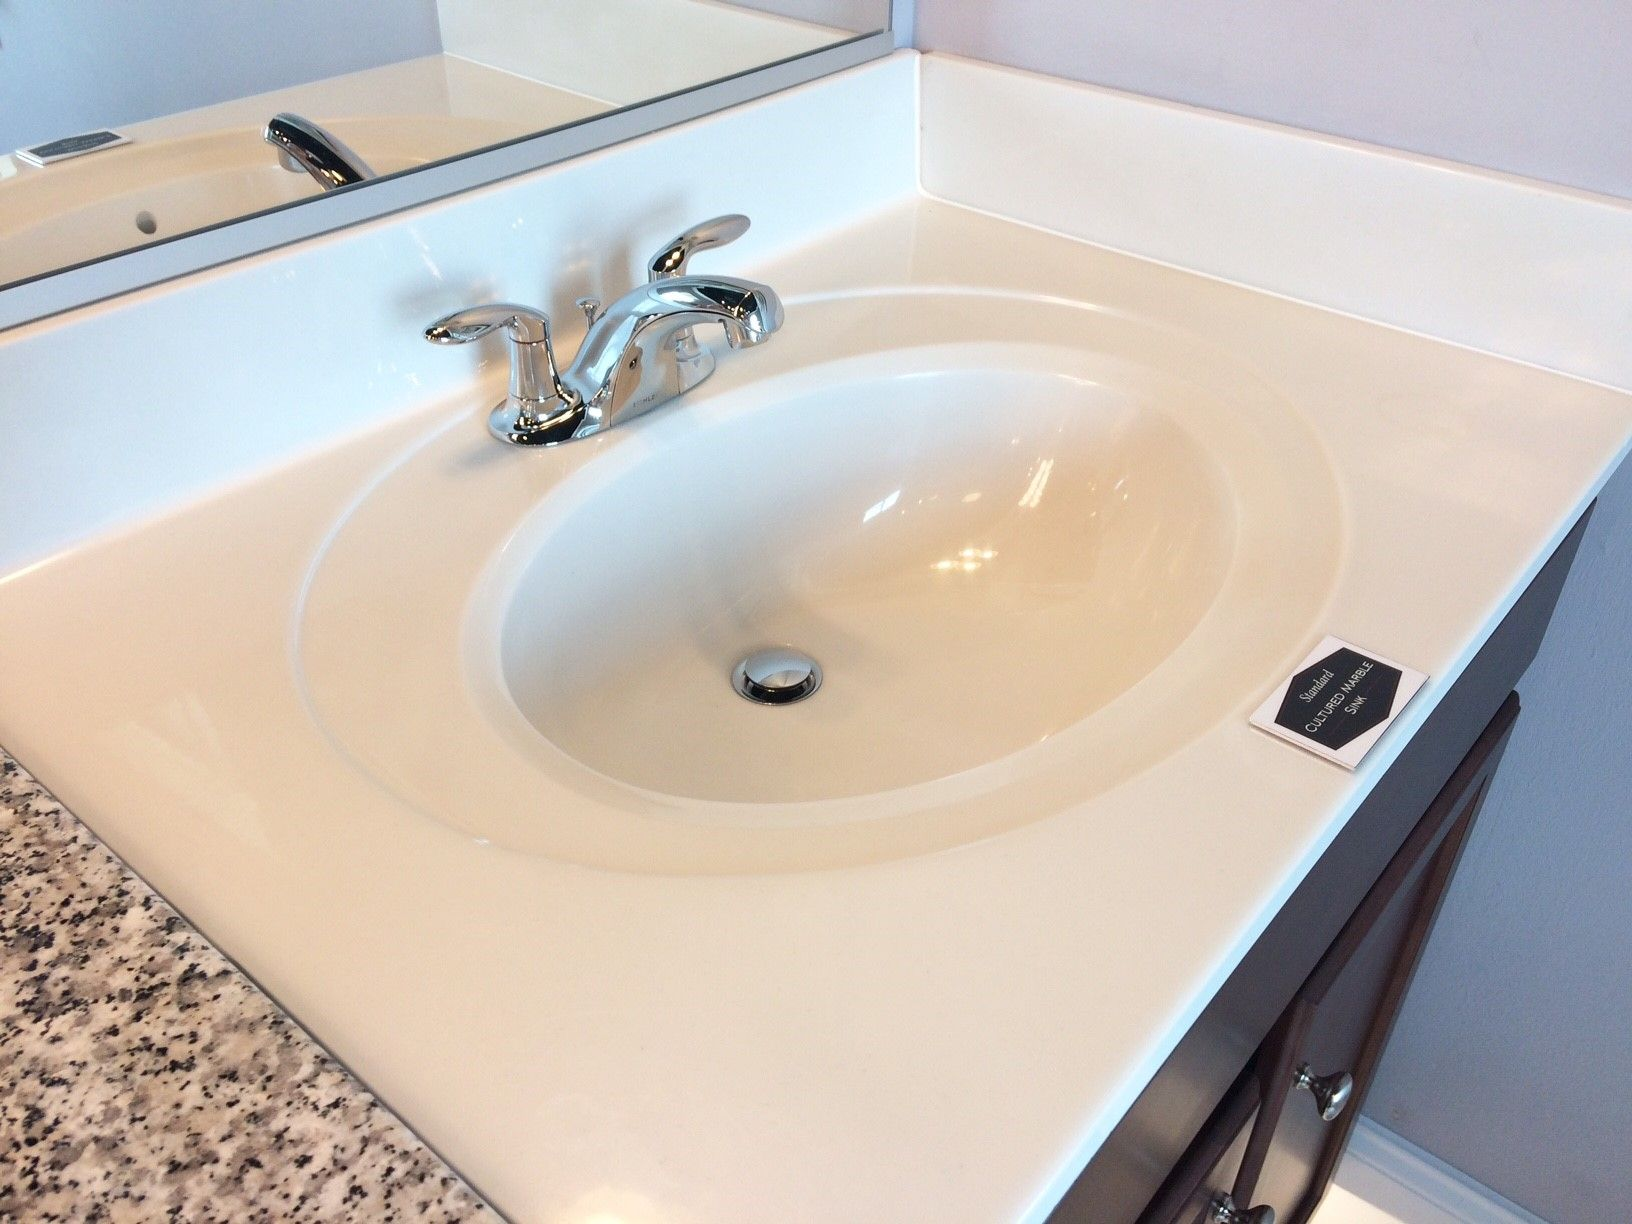 Bathroom Sink Faucet Inspirational Corian Integrated Bathroom With Regard  To Corian Kitchen Sinks Renovation ...